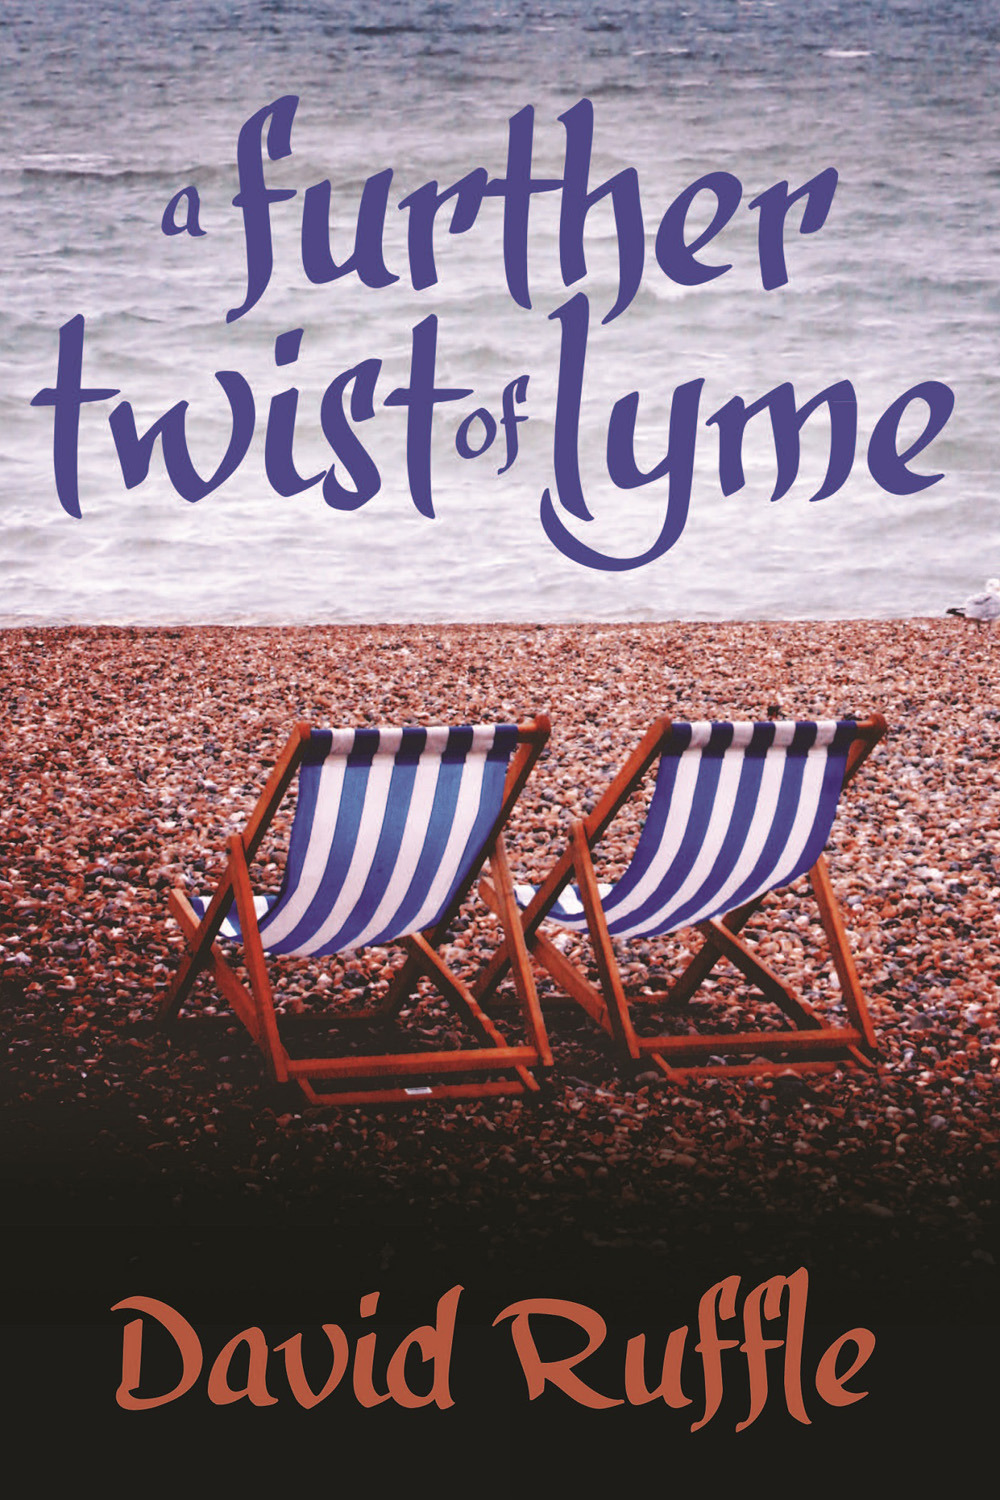 Ruffle, David - A Further Twist of Lyme, ebook